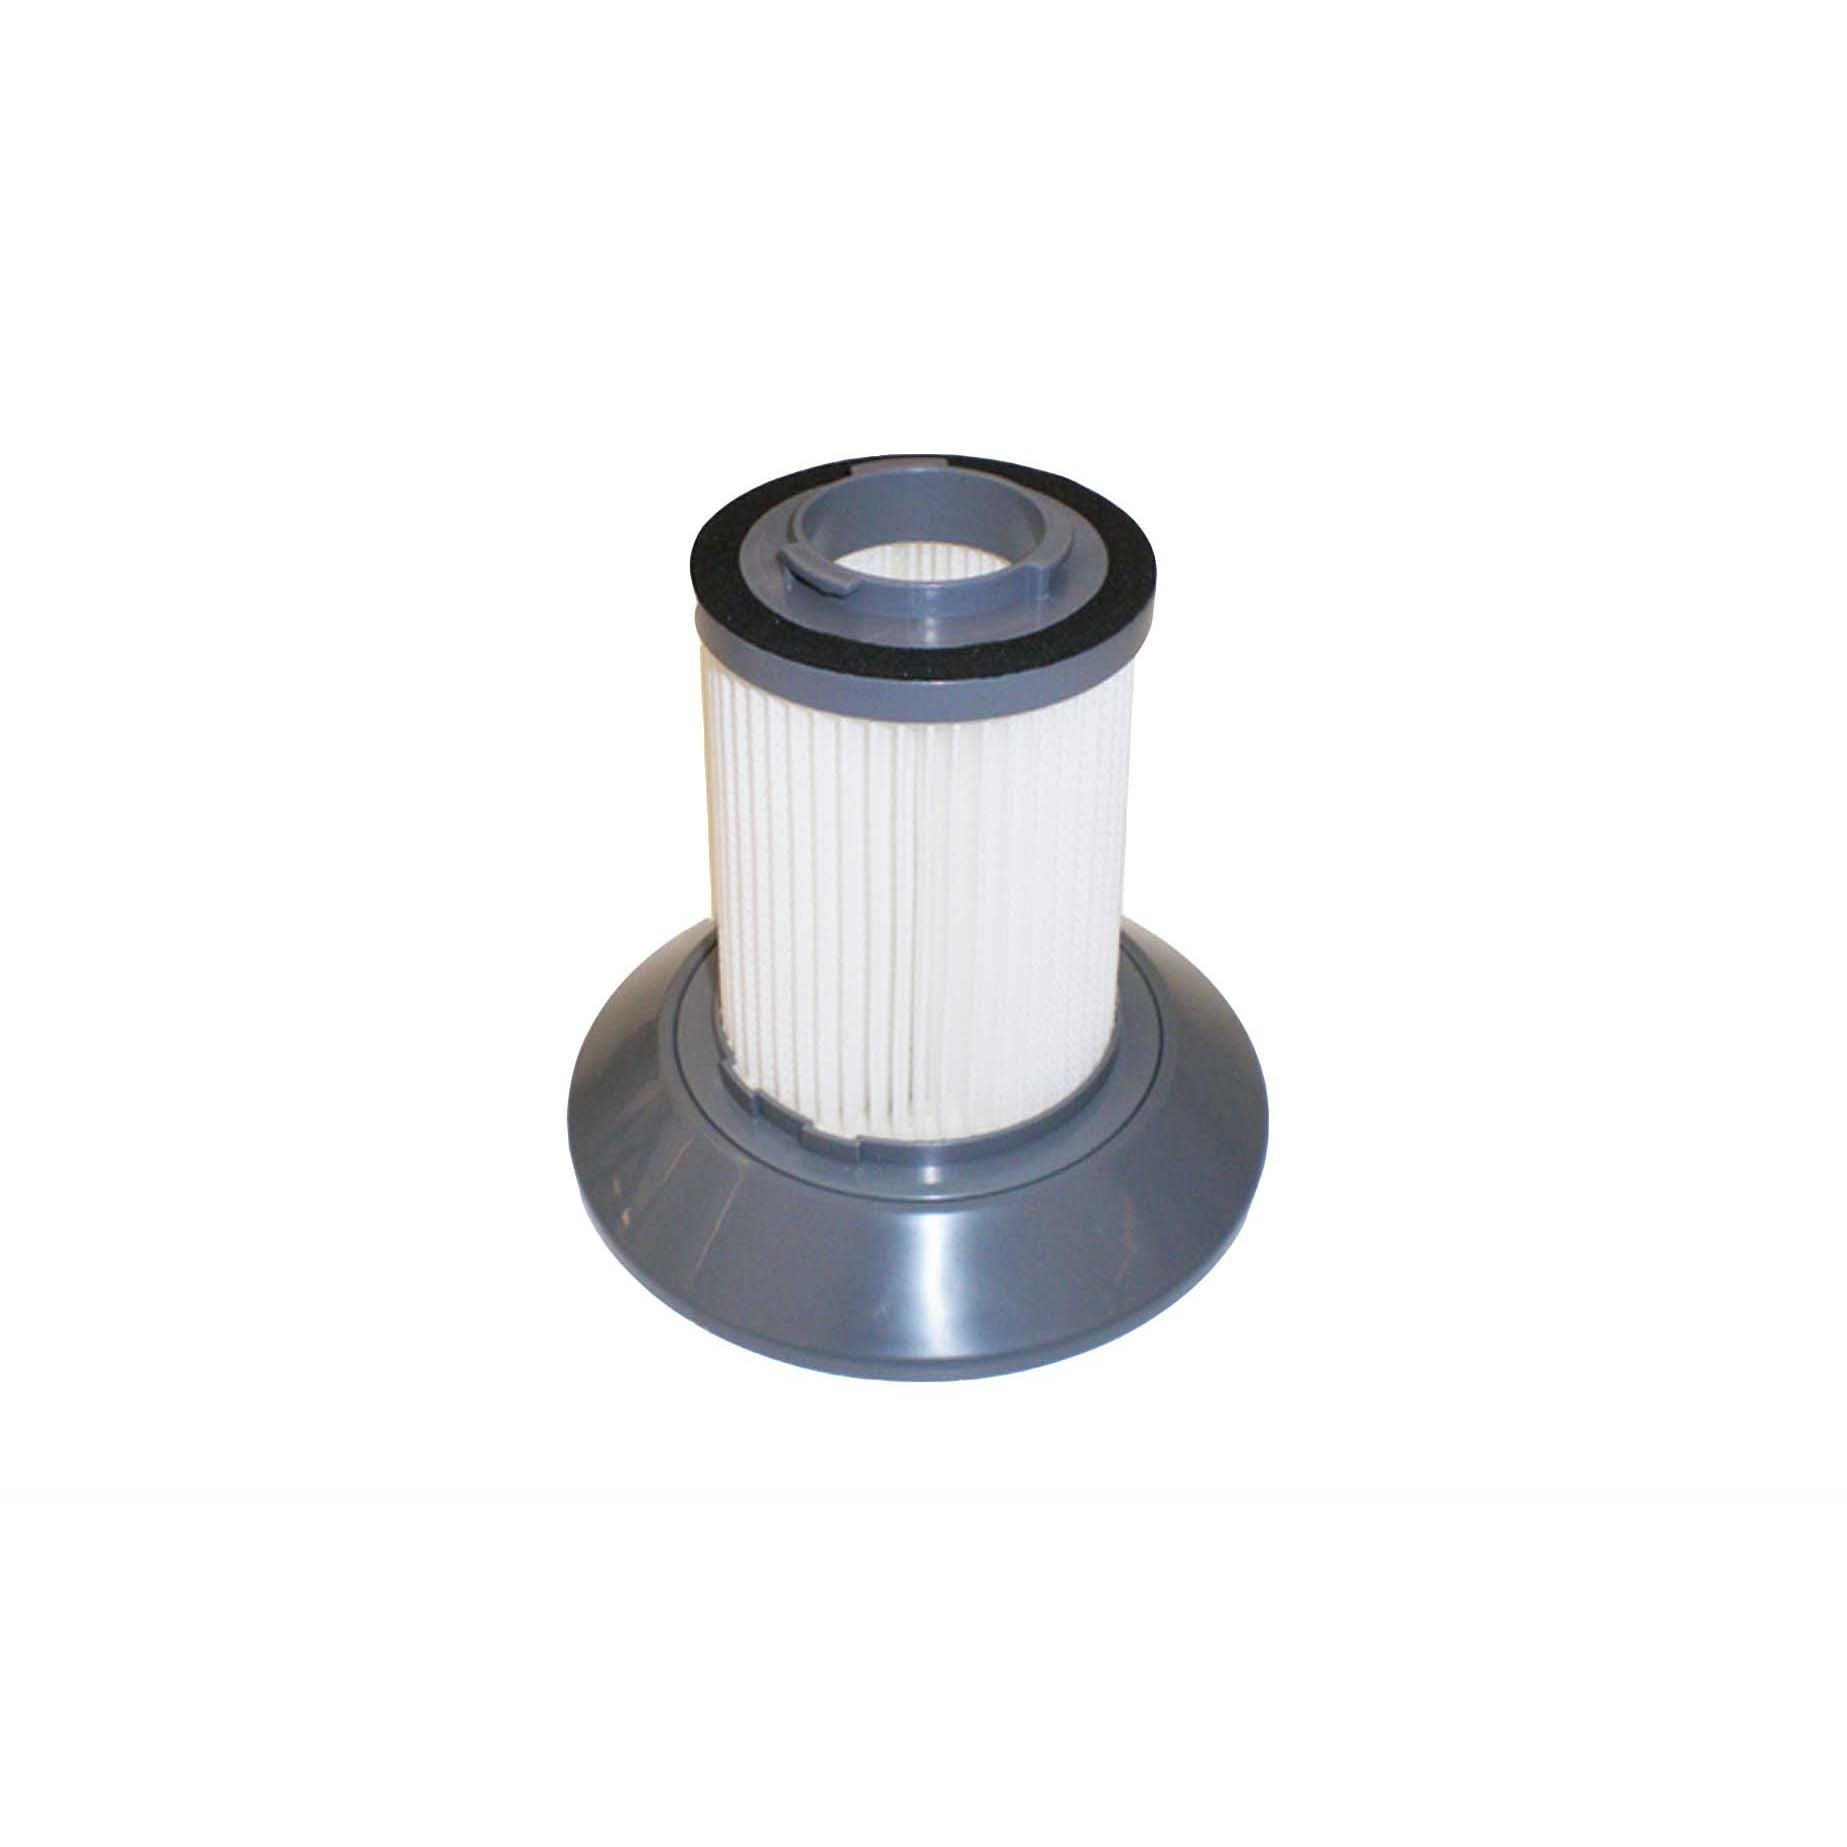 Overstock.com Crucial Vacuum 1 Bissell Dirt Bin Filter/ Fits Bissell Zing Bagless Canister Vacuum/ Compare To Part No.203-1532